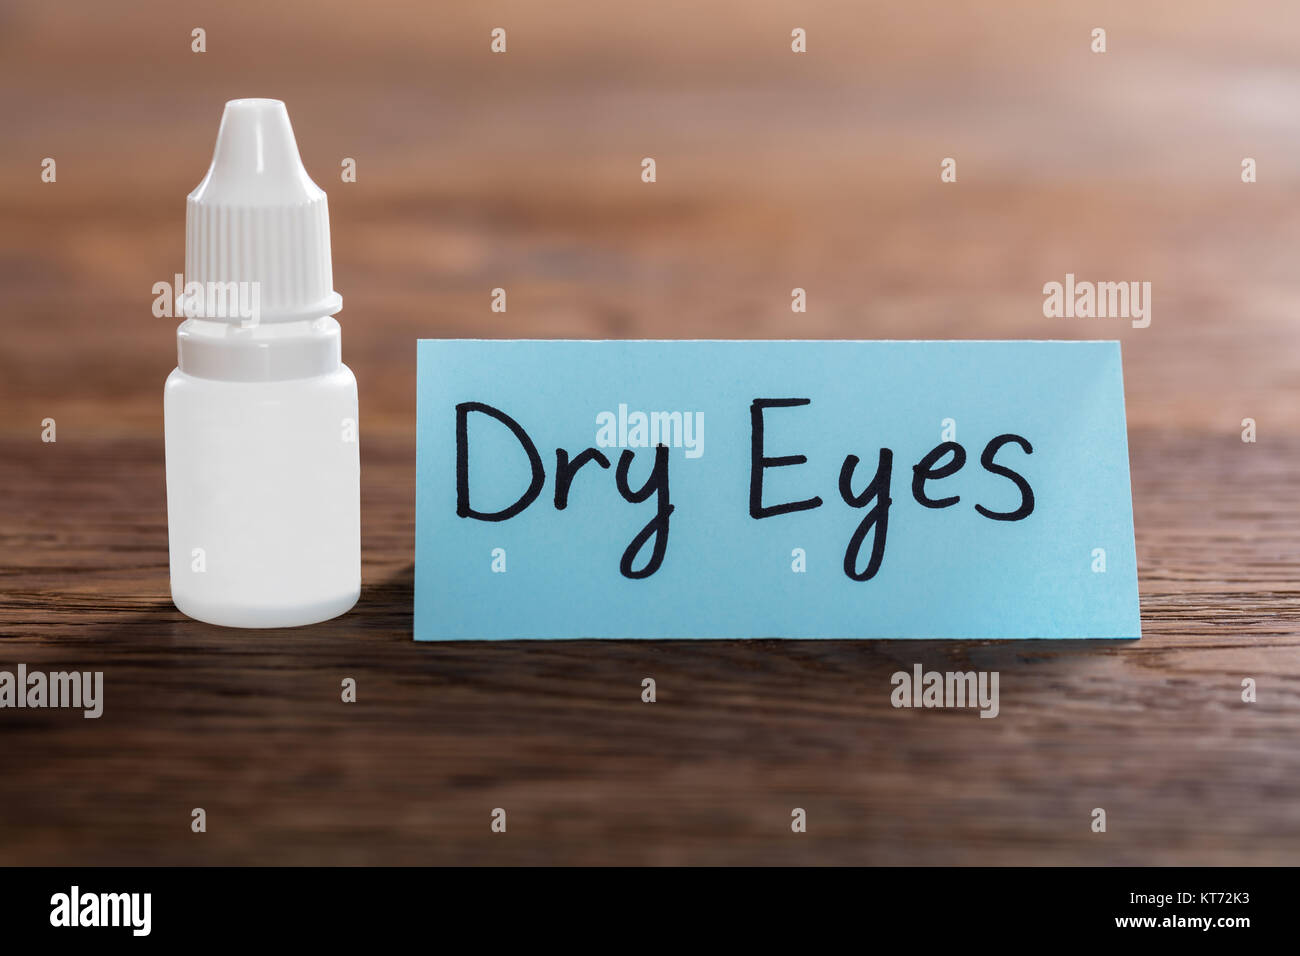 Dry Eyes Concept On Wooden Desk - Stock Image